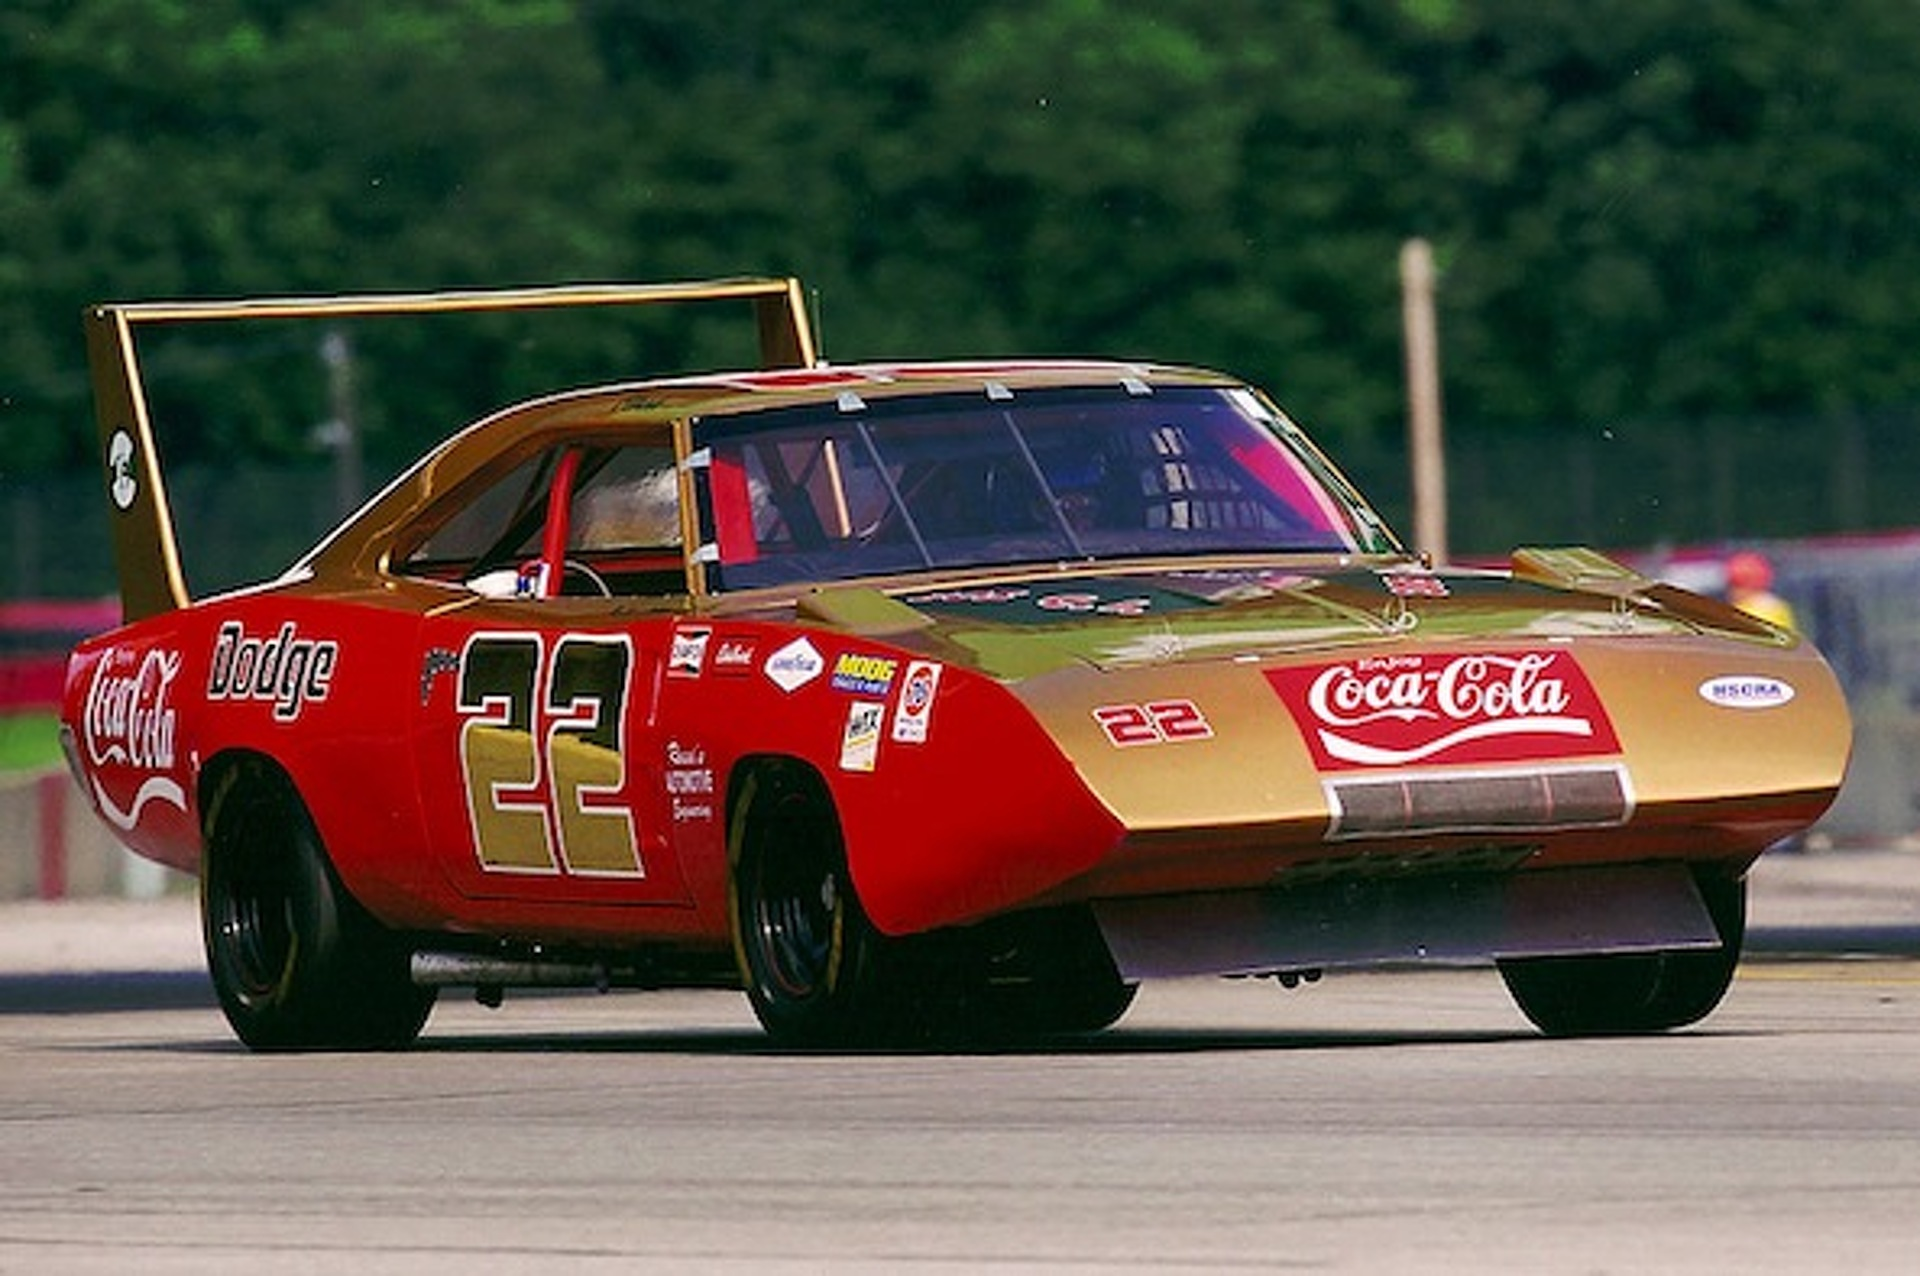 When Cars Flew: The Story of the 1969 Dodge Daytona